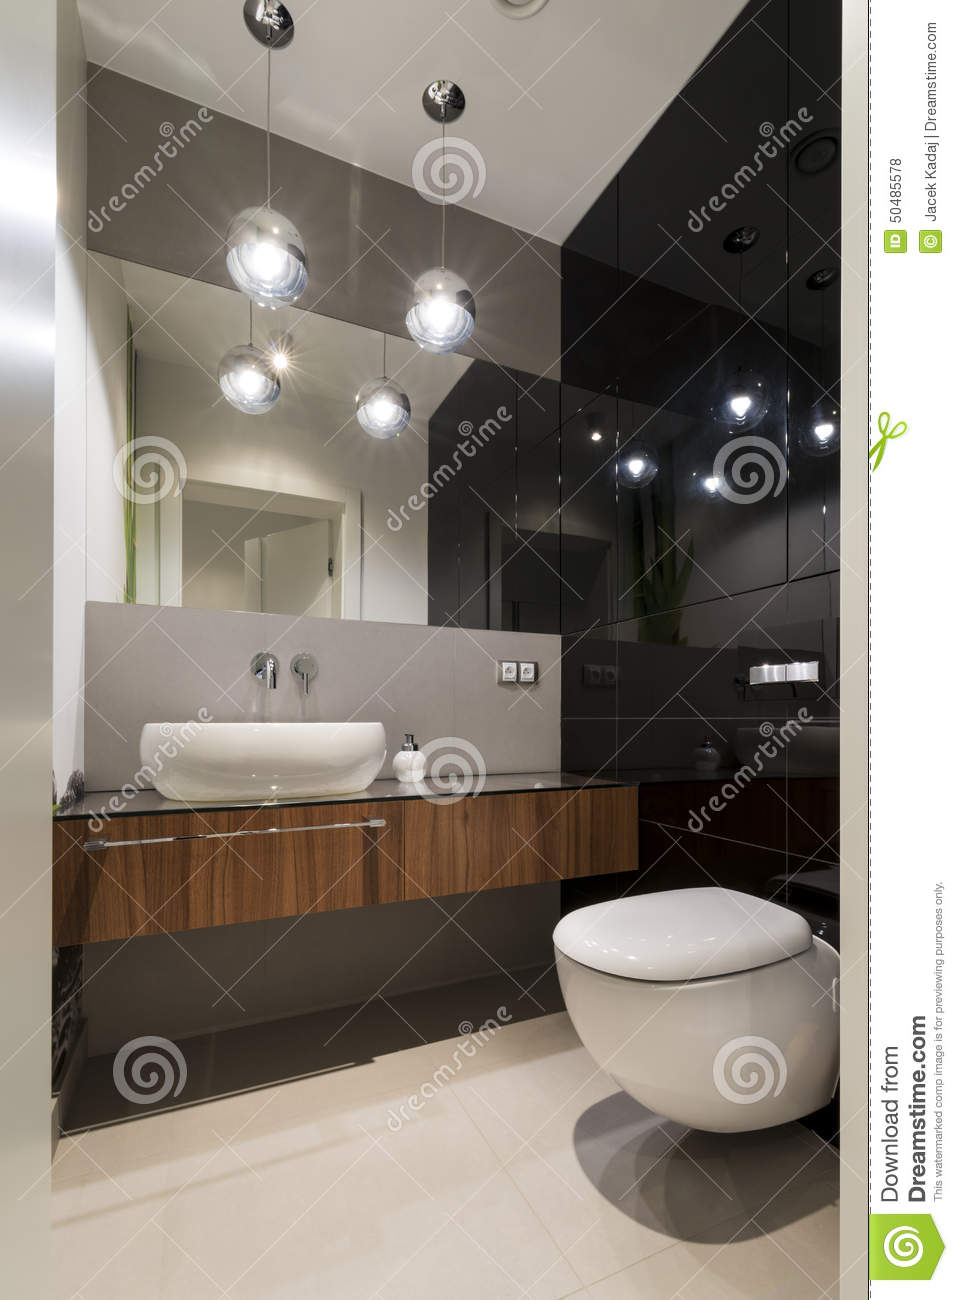 Toilet Room Designs: Modern Luxury Toilet Room Stock Photo. Image Of Furniture